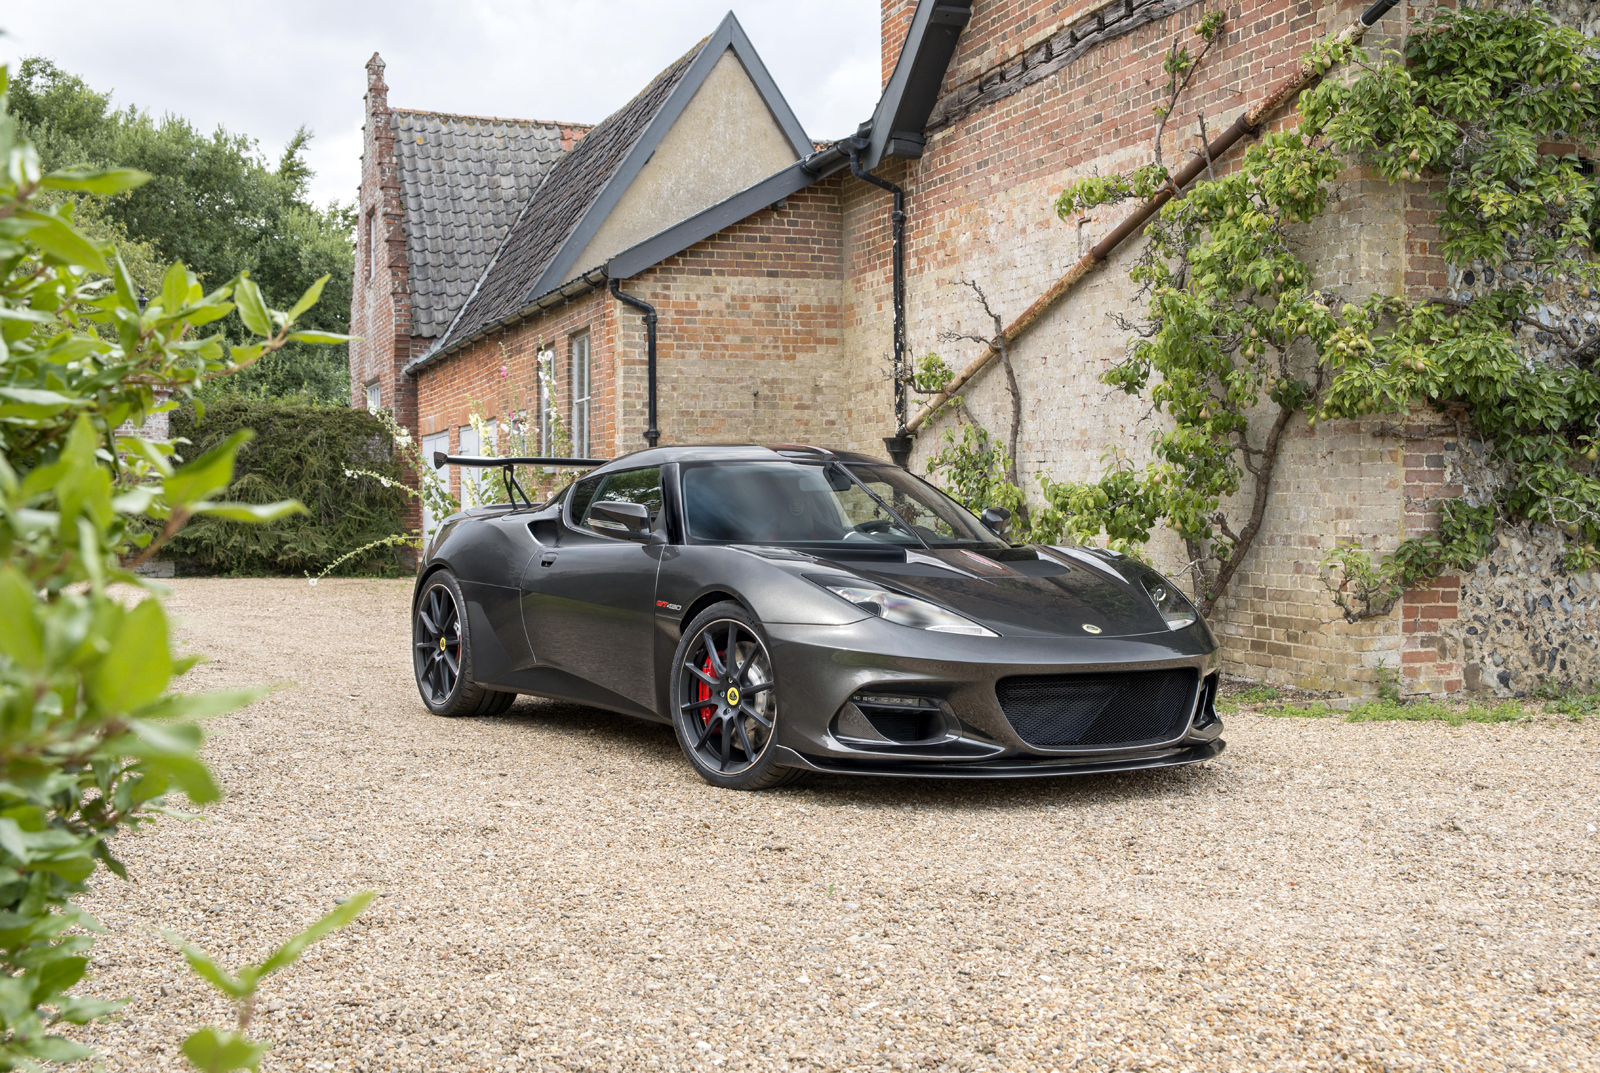 Lotus releases ultimate Evora GT430